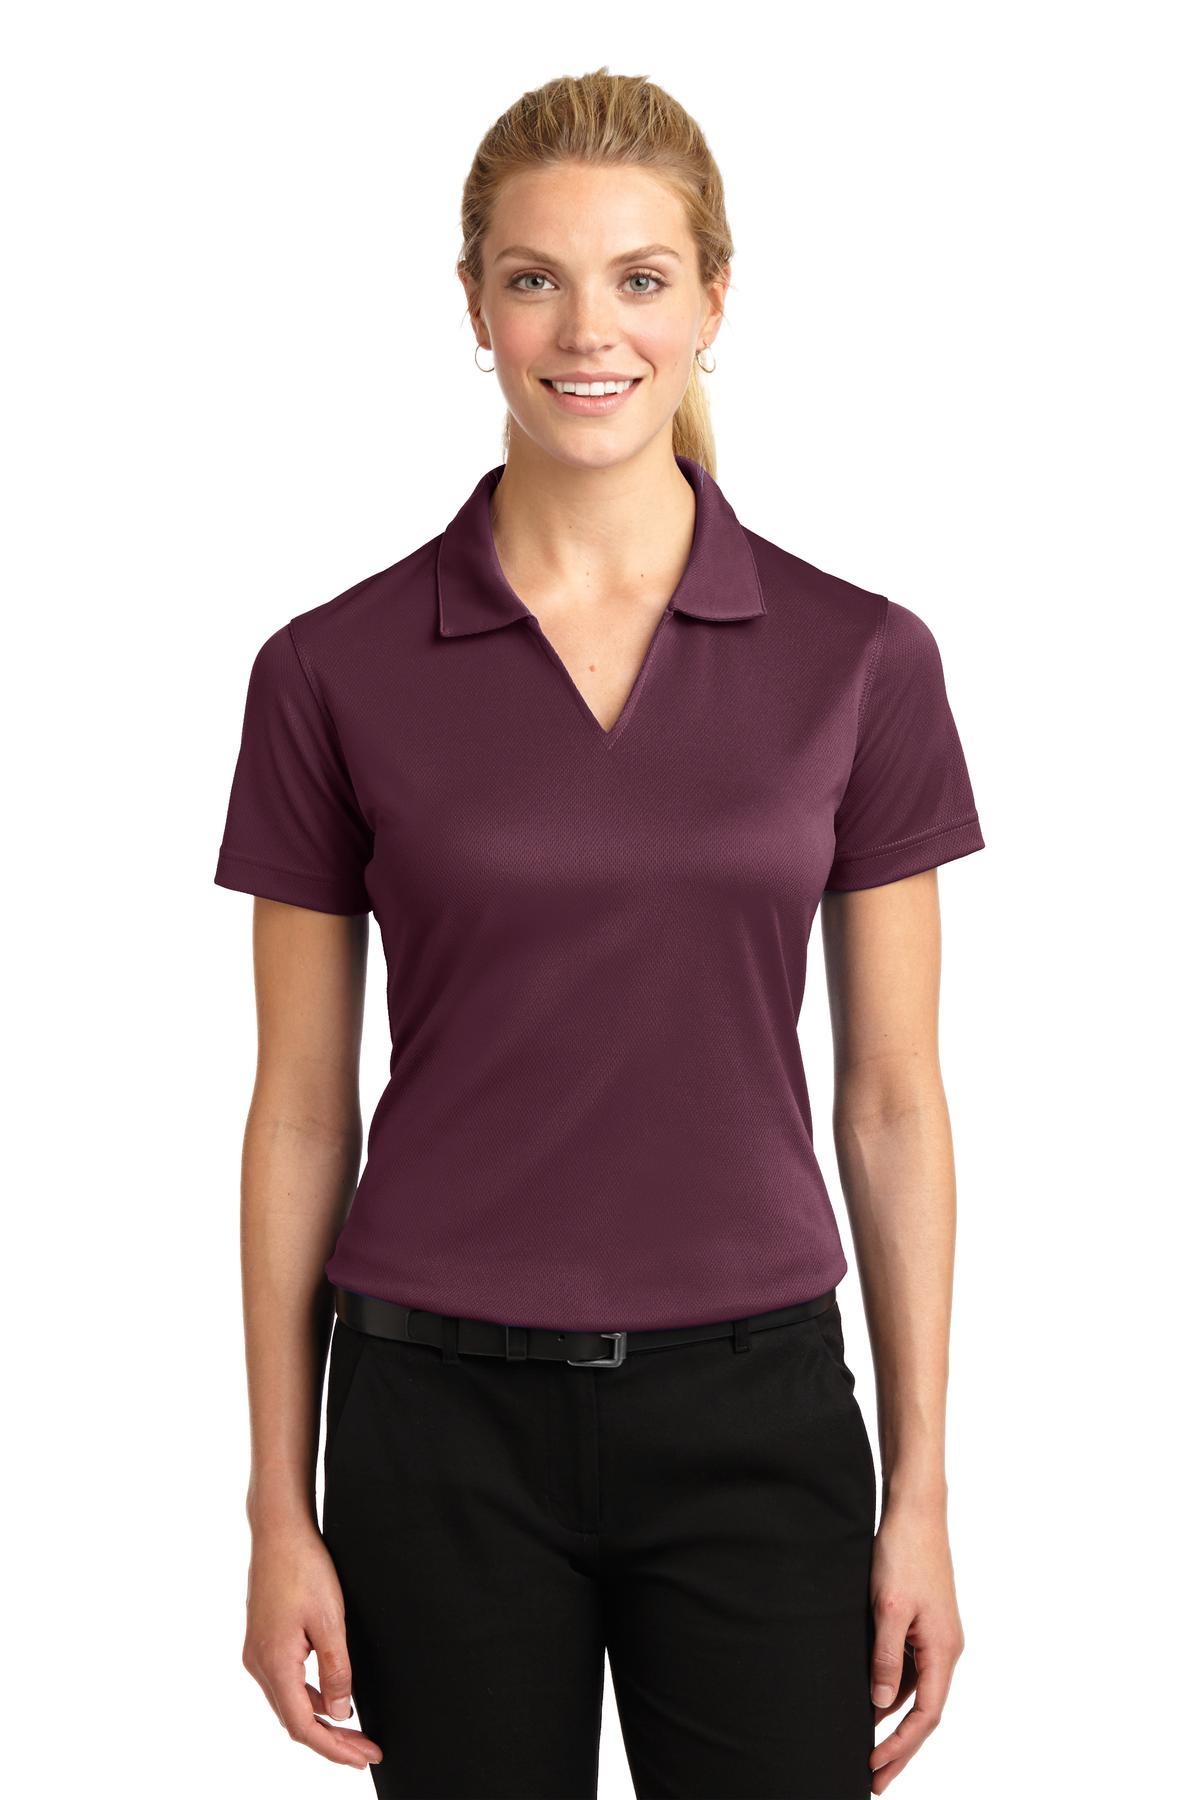 Sport-Tek ®  Ladies Dri-Mesh ®  V-Neck Polo.  L469 - Maroon